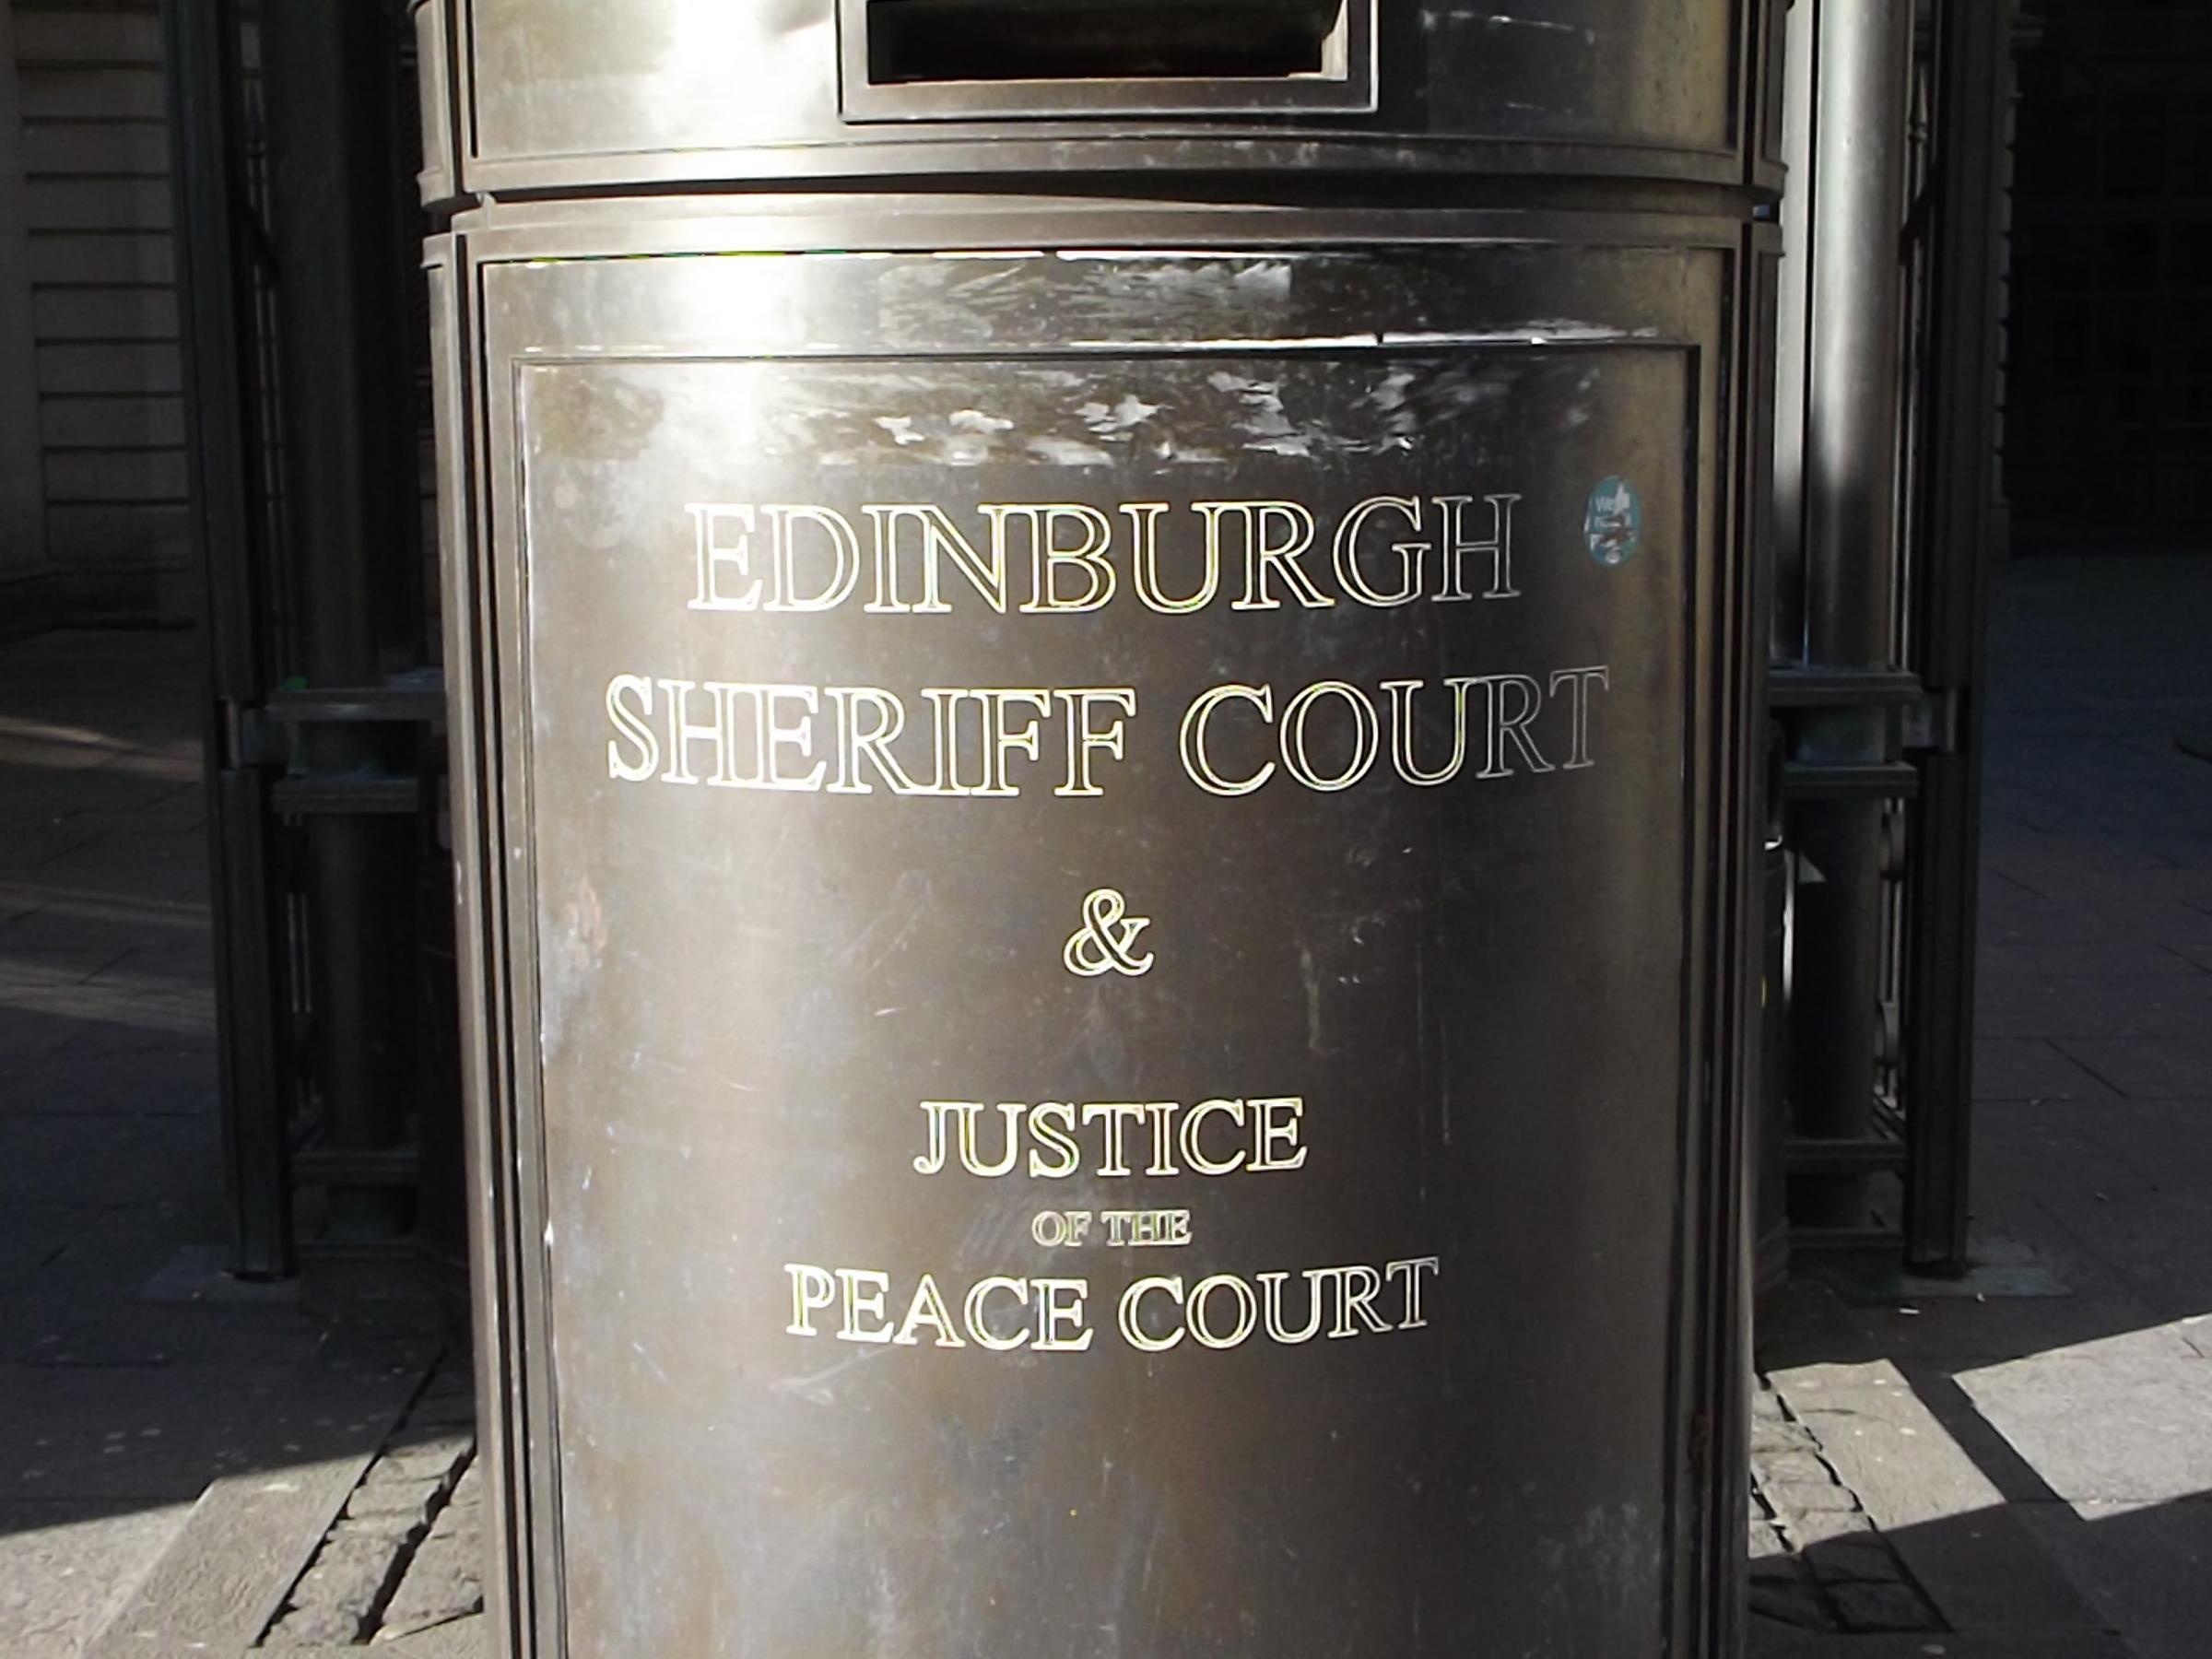 Tranent man Stefan Heron to be sentenced after claiming he had AIDS